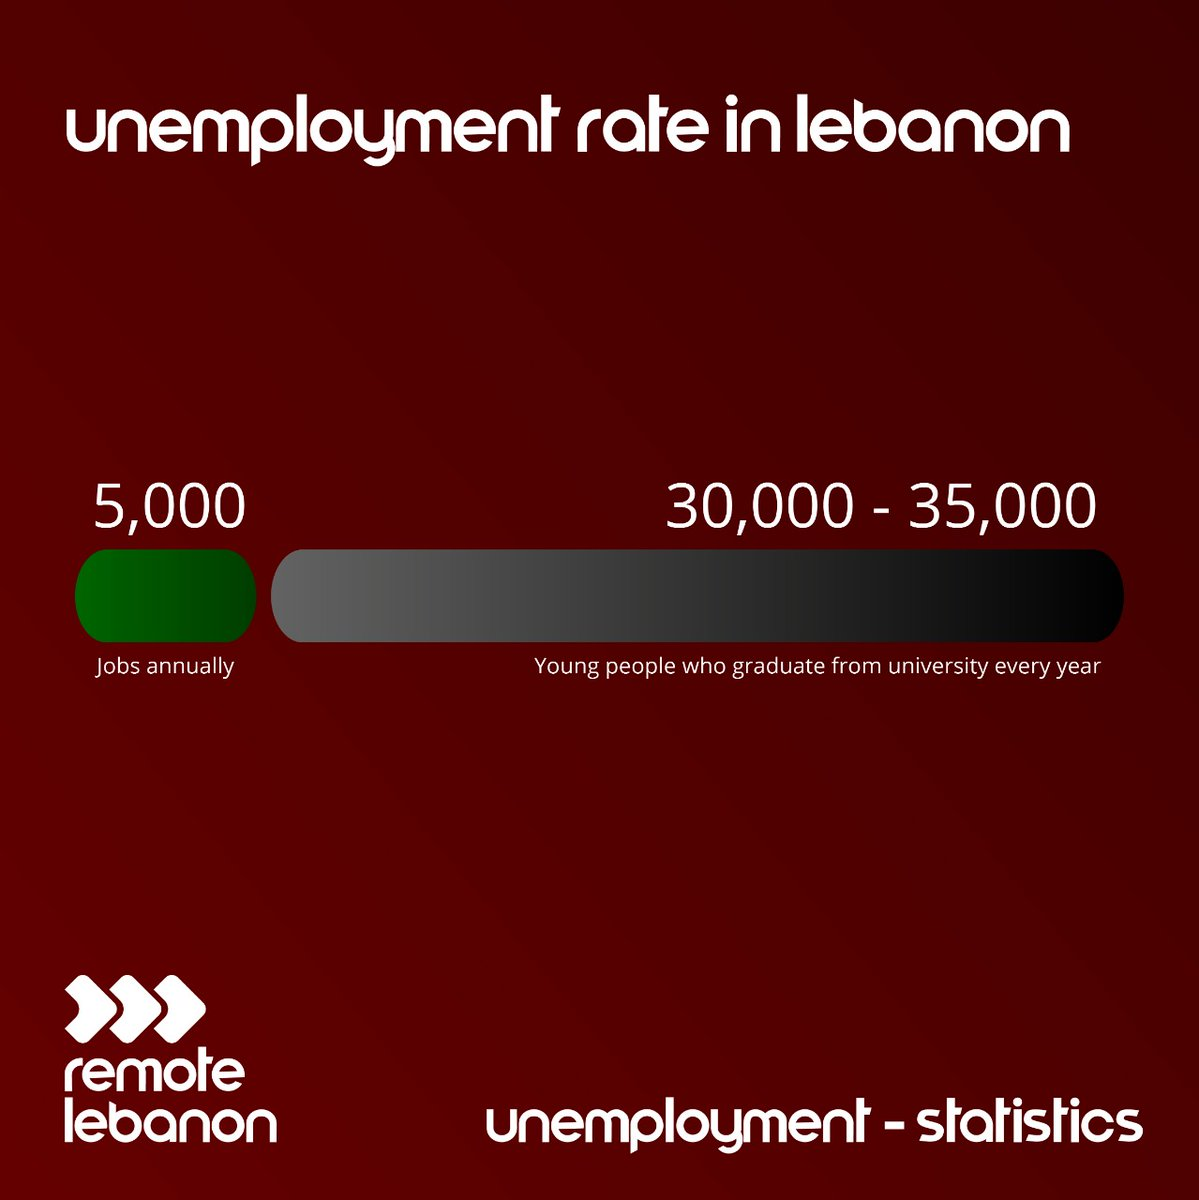 Every year we celebrate the graduation season, countless students getting their degrees and stepping up on the journey of job hunting.  Visit https://t.co/8pDS2tMpNW for more information.  #RemoteLebanon #LebanonRevolution #LiveLoveLebanon #UnemploymentRate #RemoteWork https://t.co/Ox8l8iwQfW